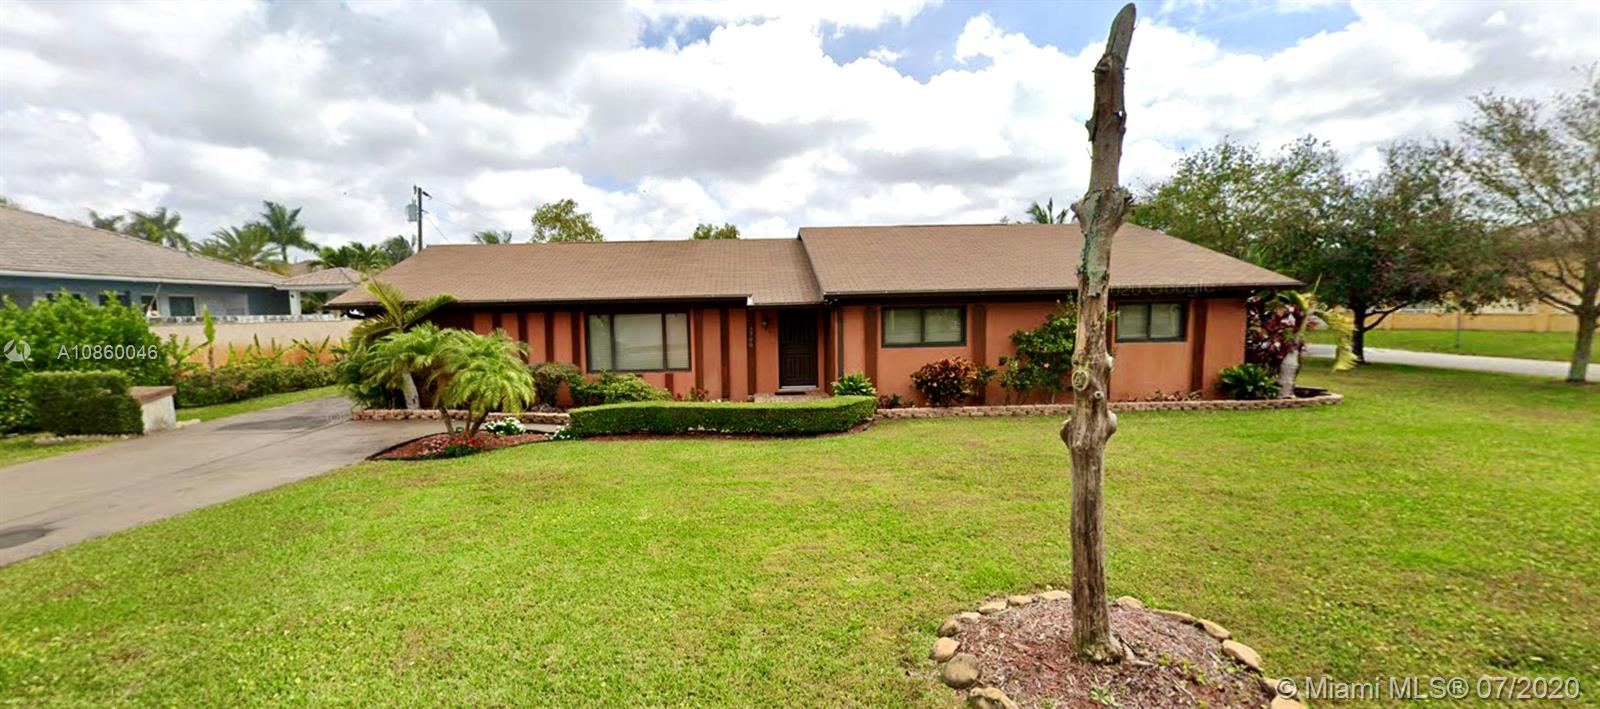 2700 NW 100th Ave  For Sale A10860046, FL